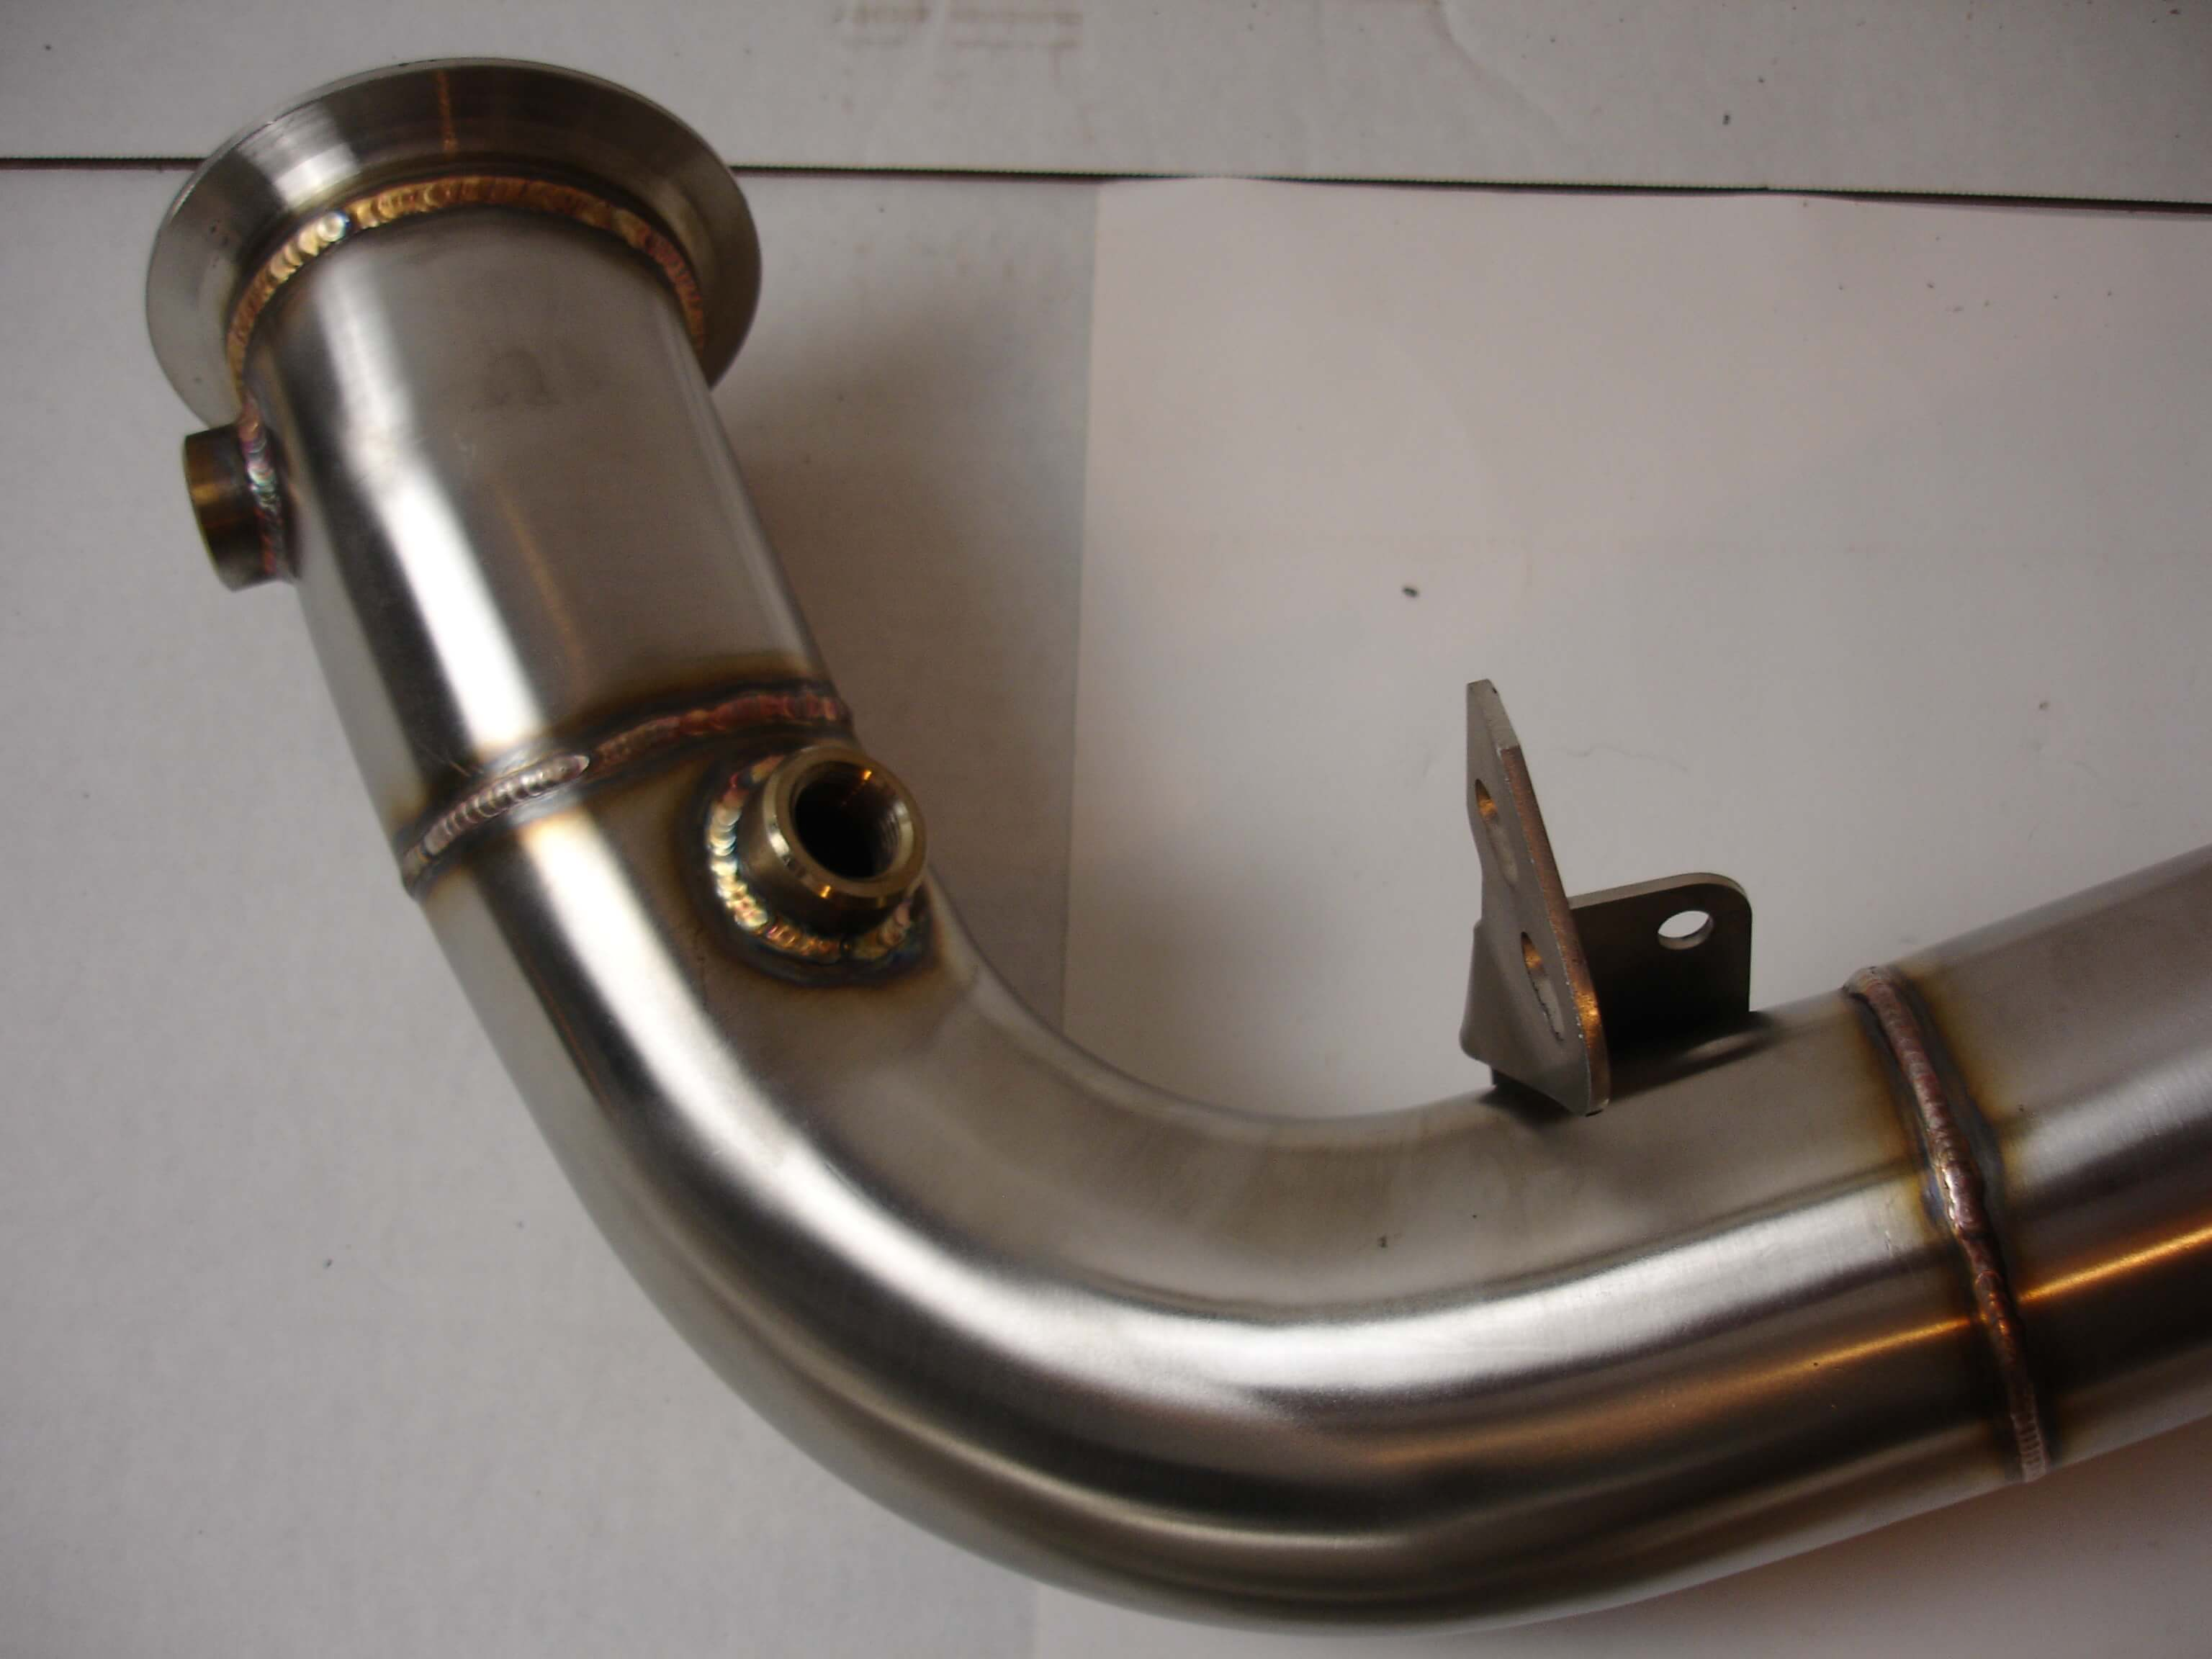 BMW Turbo Down Pipes F10 M5 or M6 S63B44T0 Engine